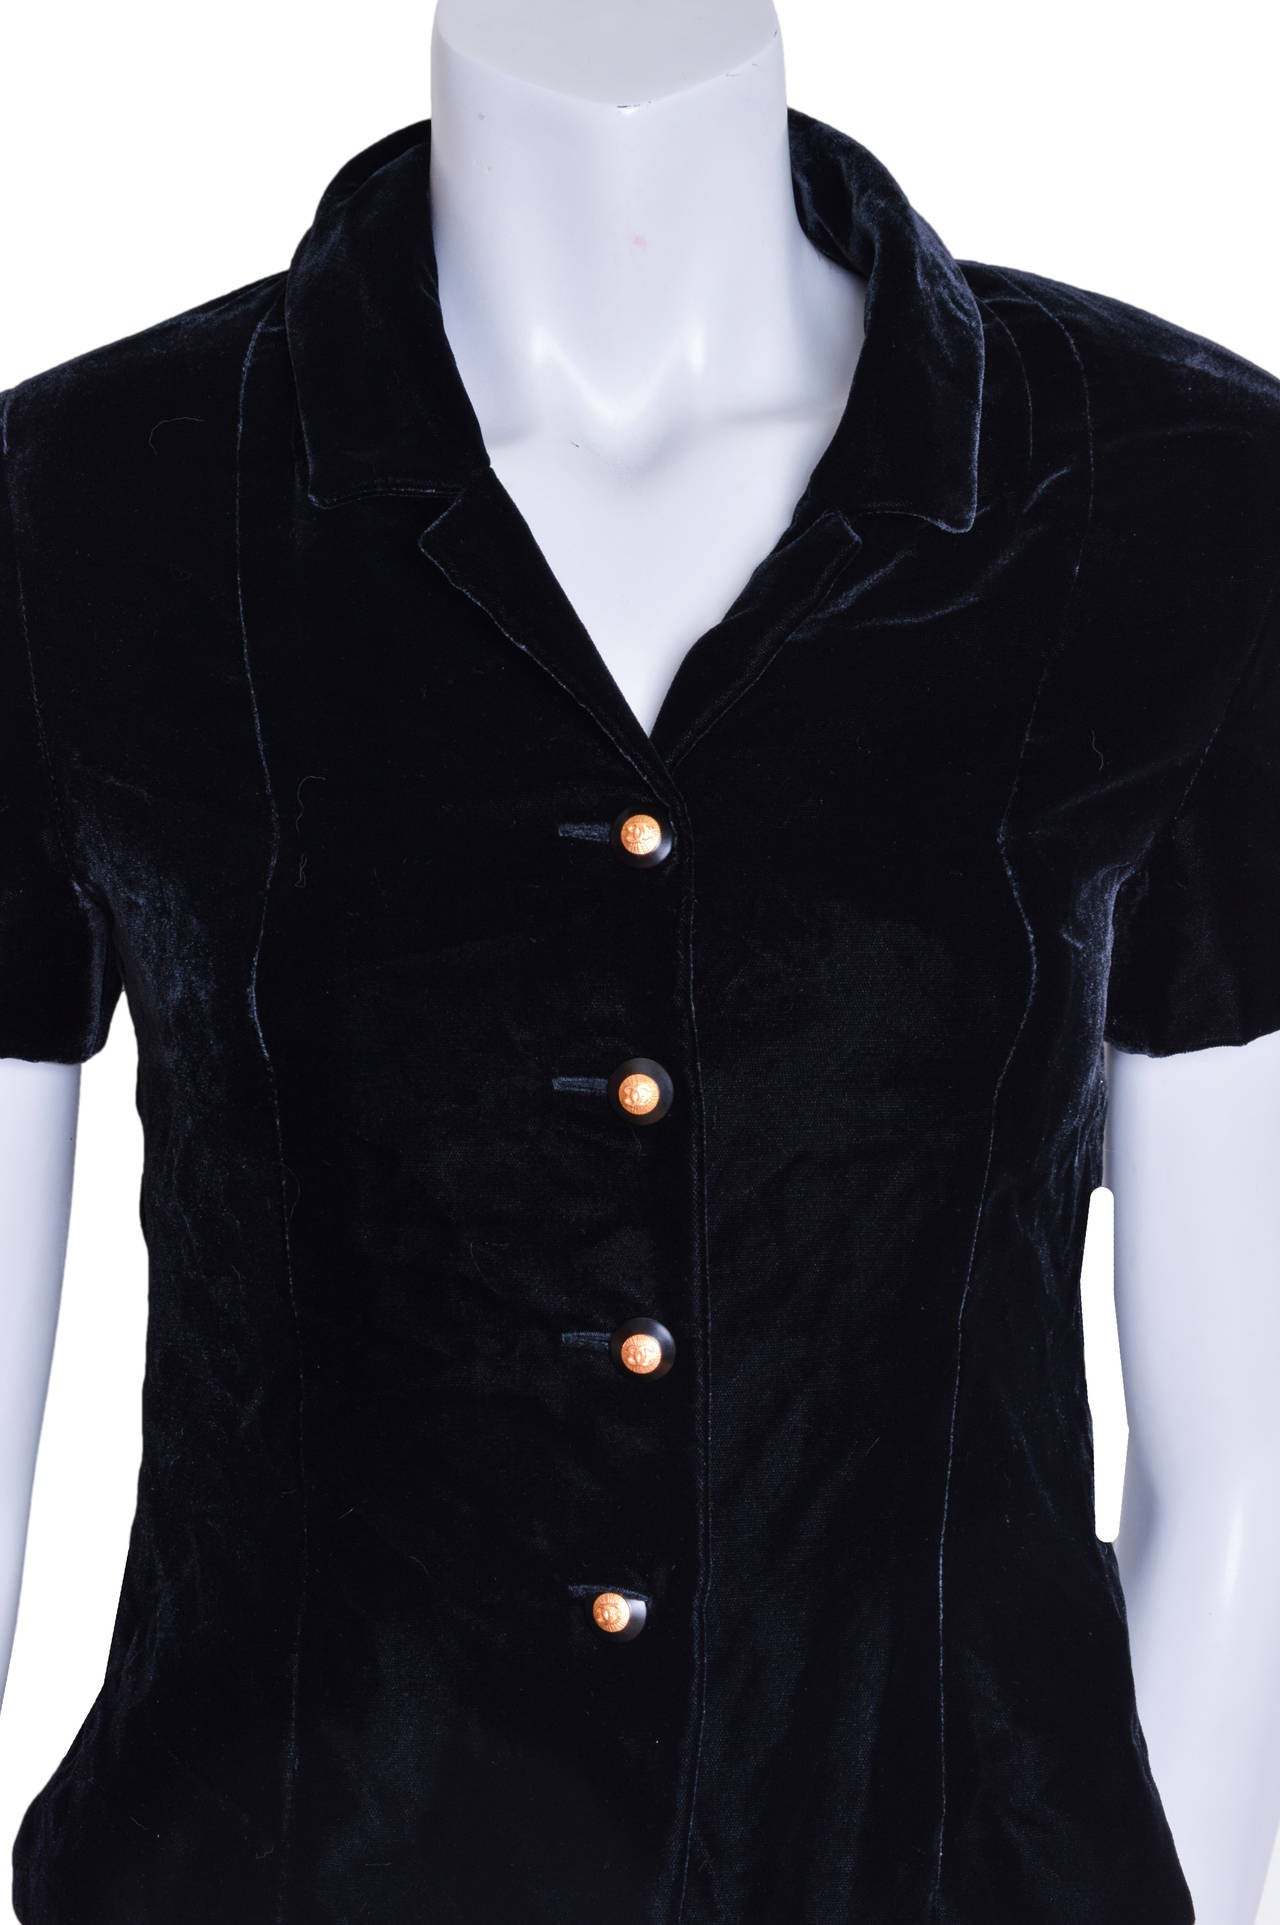 Chanel Boutique Black Velvet Formal Top 6